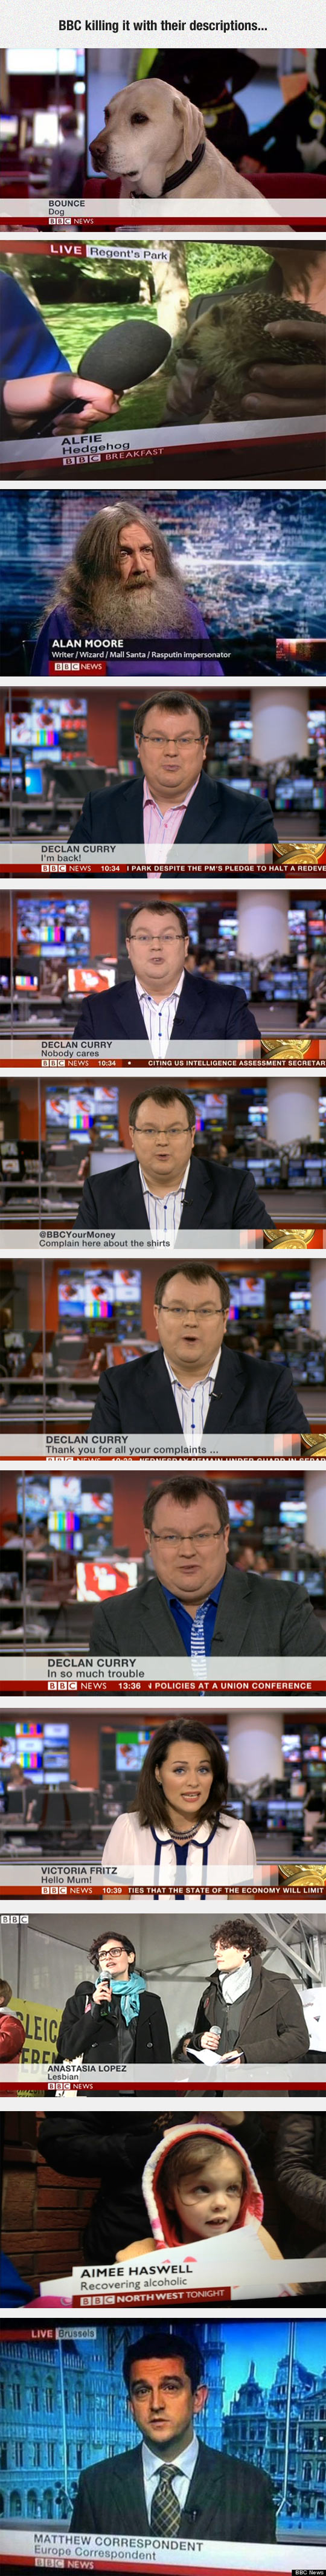 The Person In Charge Of Captions At BBC Deserves A Raise